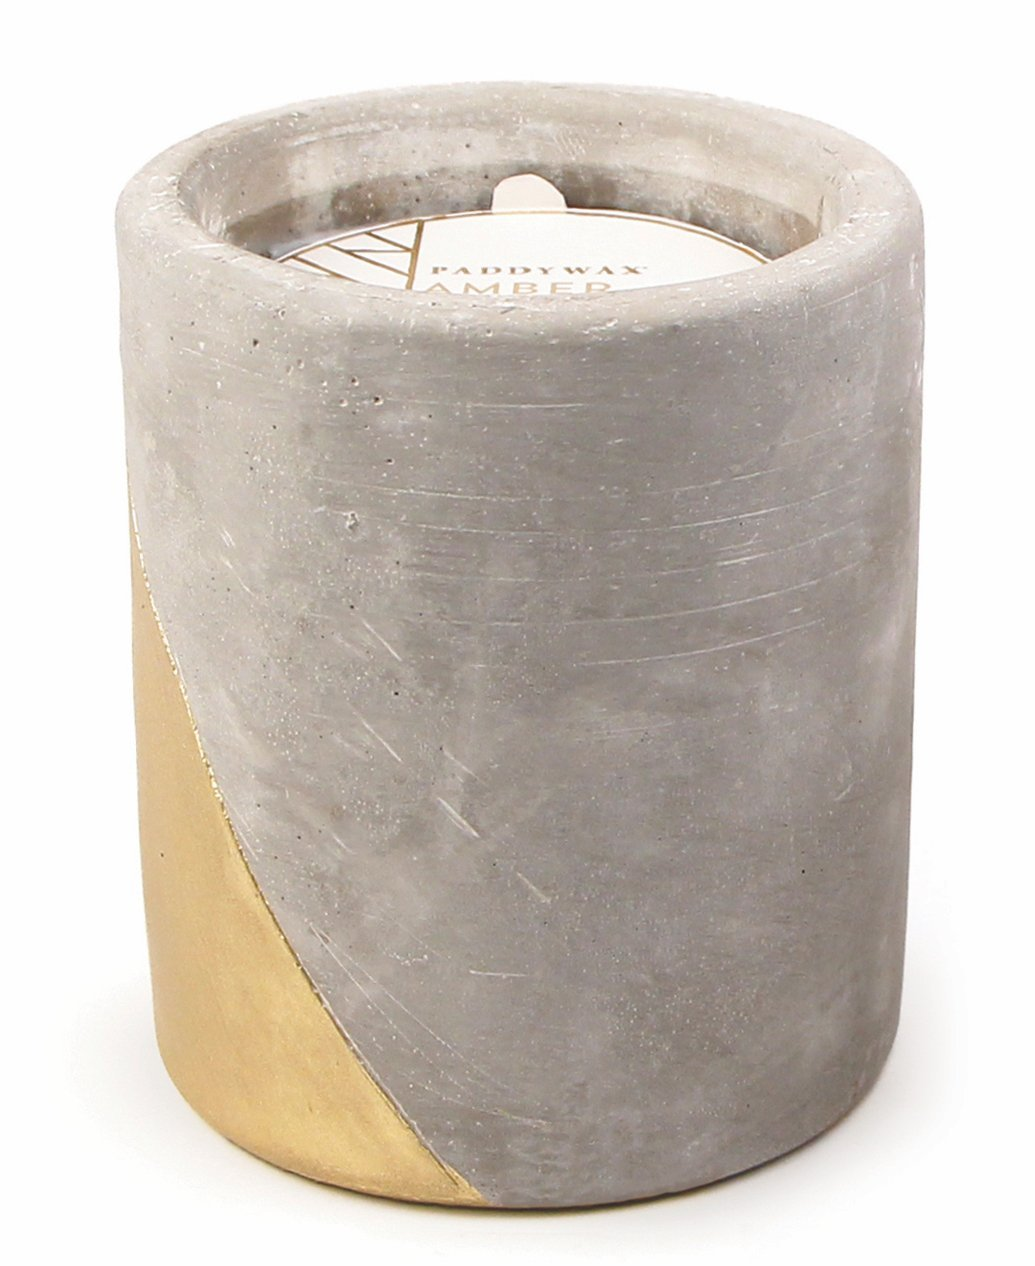 Paddywax Urban Collection Scented Candle, 12-Ounce, Amber + Smoke